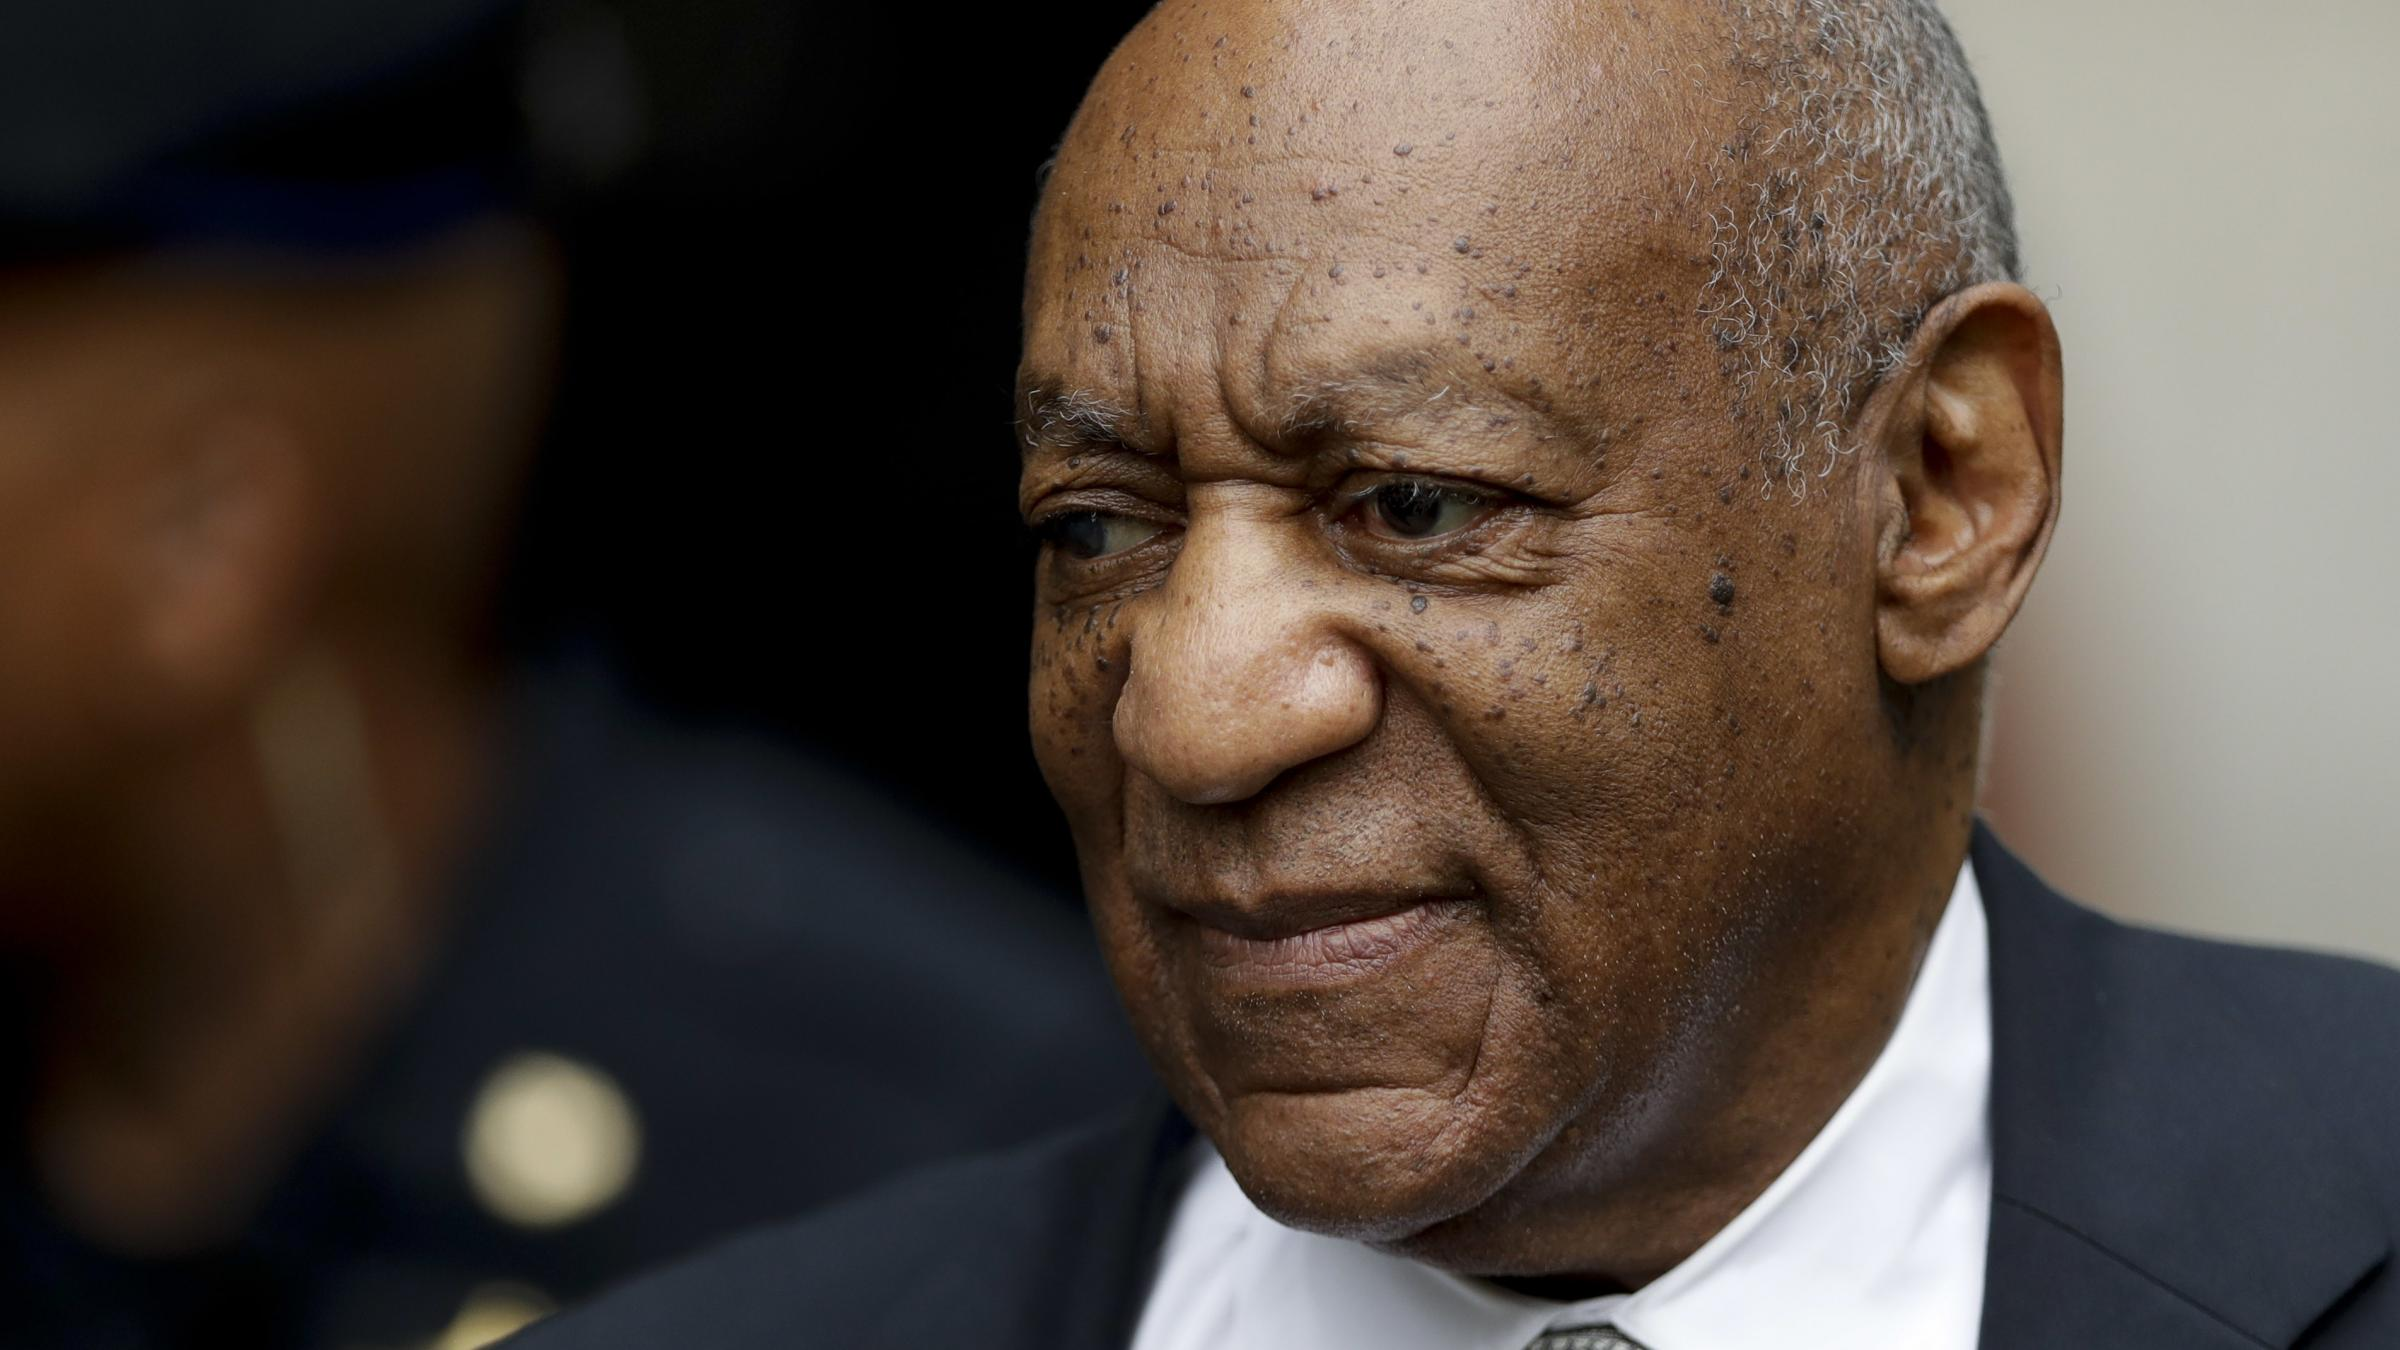 The criminal case against Bill Cosby has been declared a mistrial